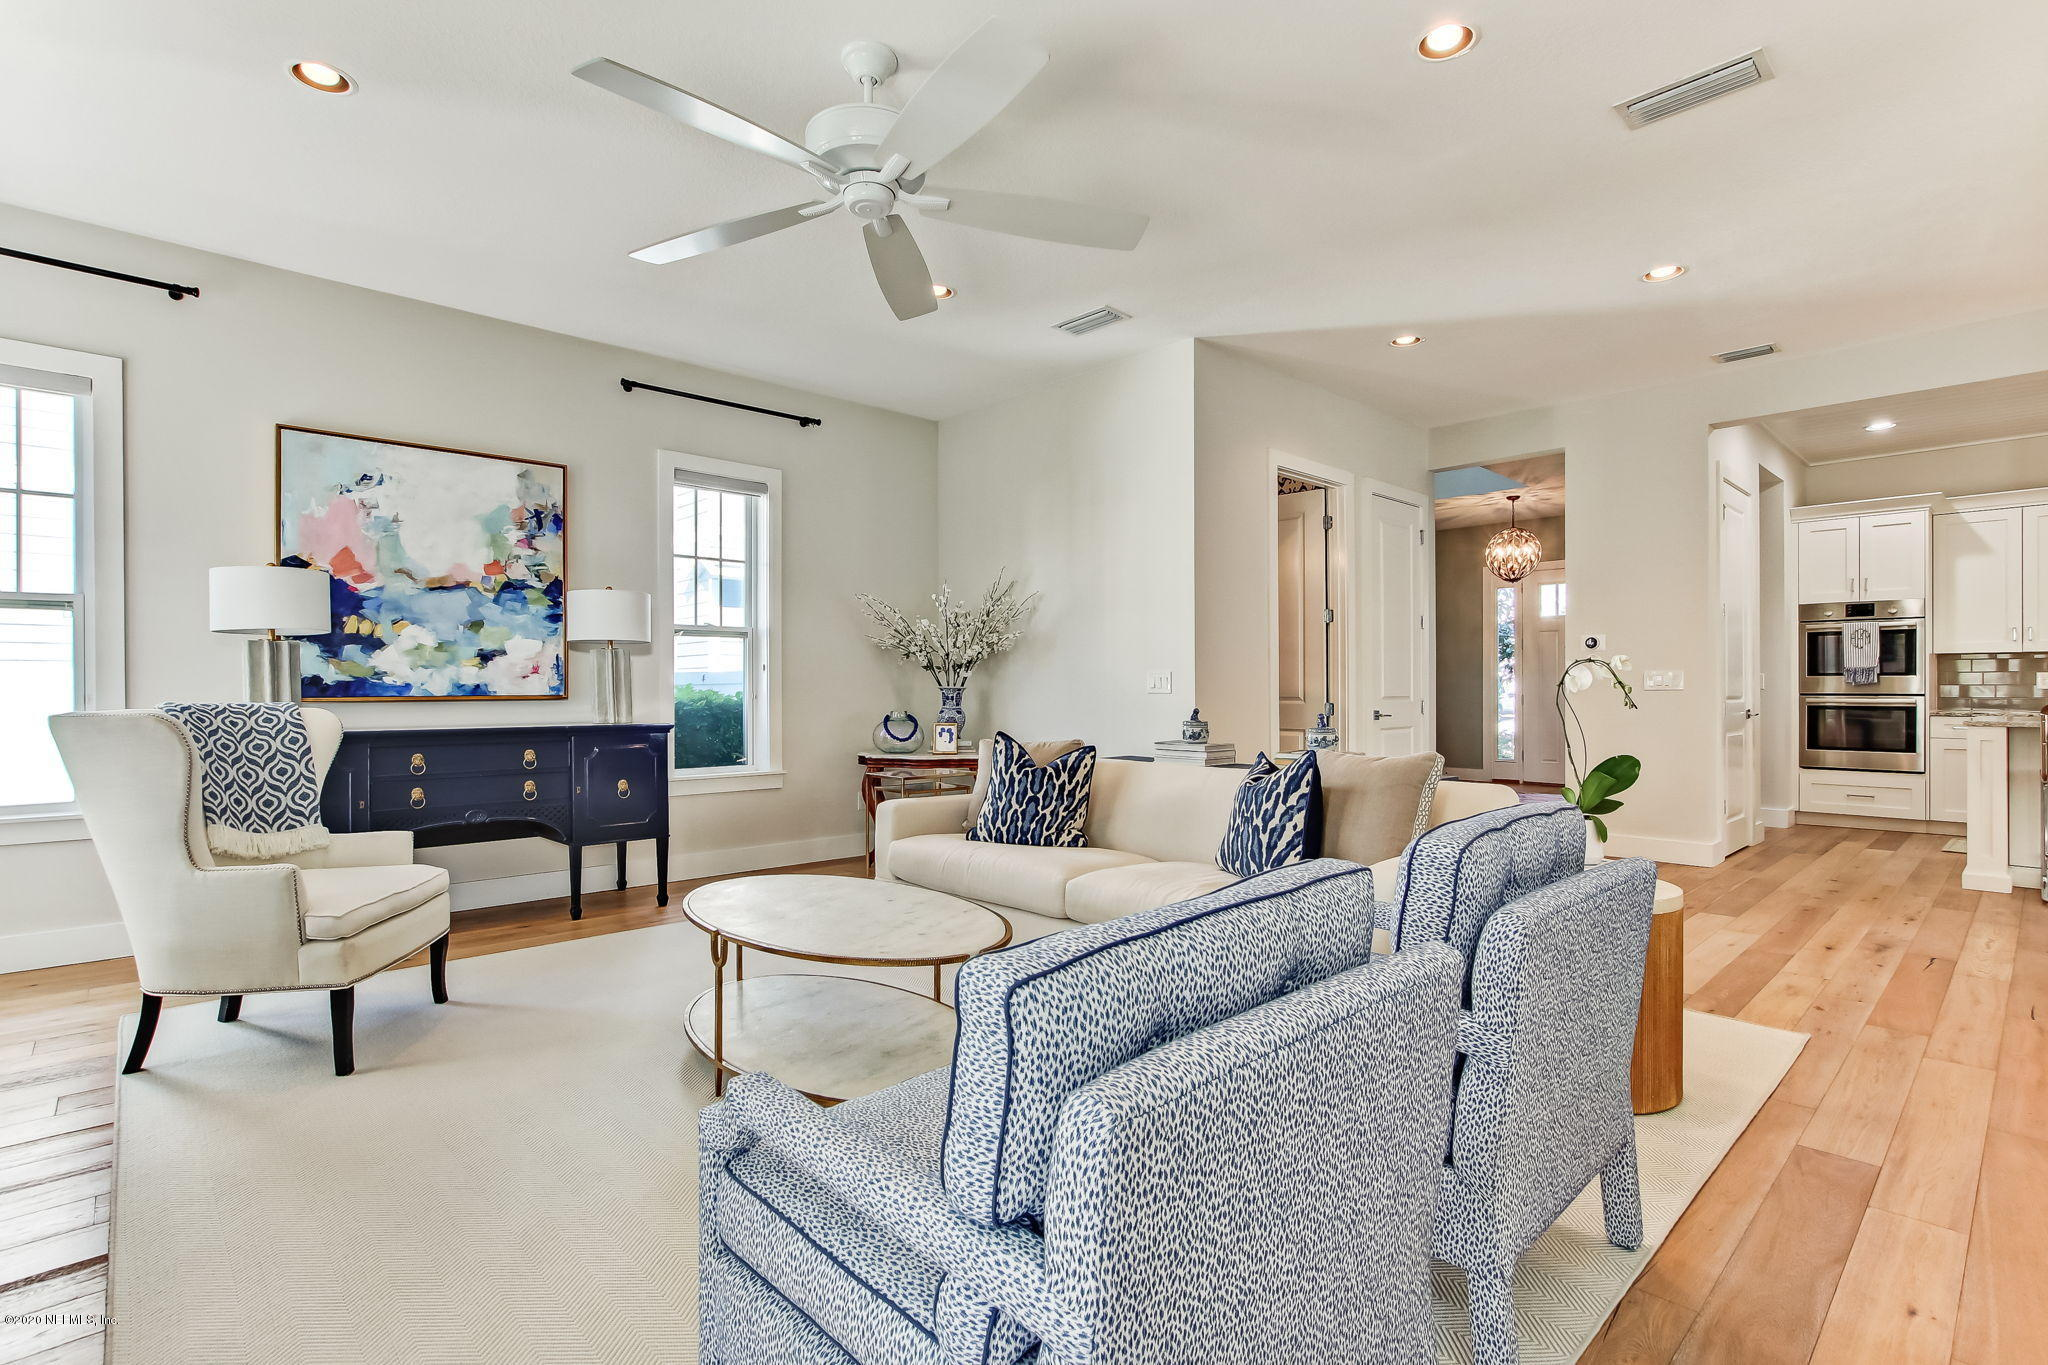 212 AVE C, PONTE VEDRA BEACH, FLORIDA 32082, 3 Bedrooms Bedrooms, ,3 BathroomsBathrooms,Residential,For sale,AVE C,1081649